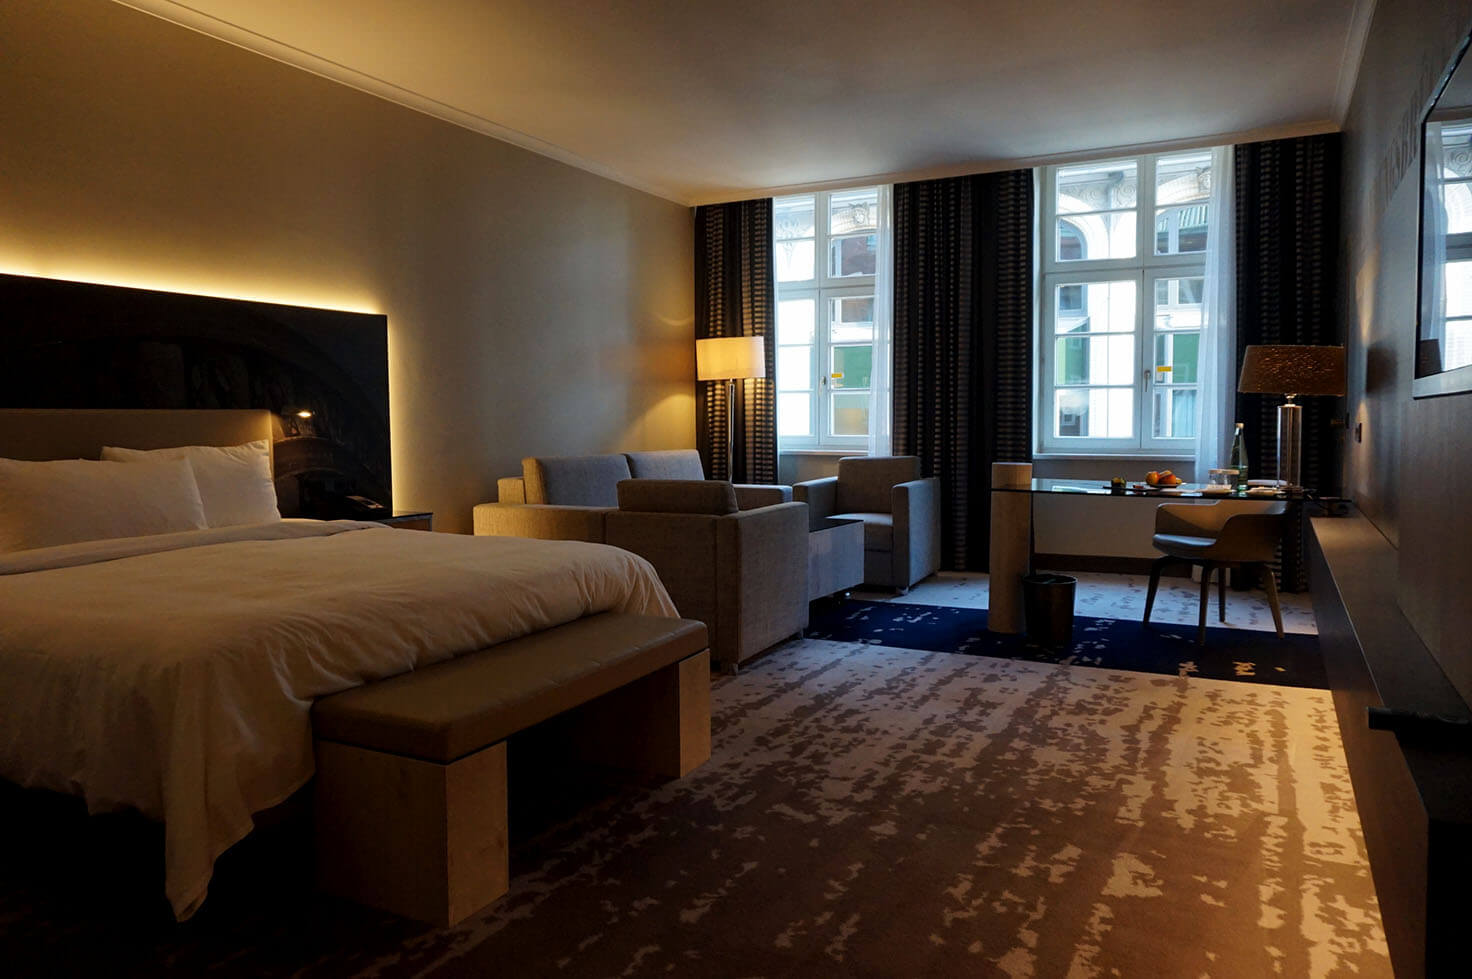 Renaisaance - one of the best hotels in Hamburg